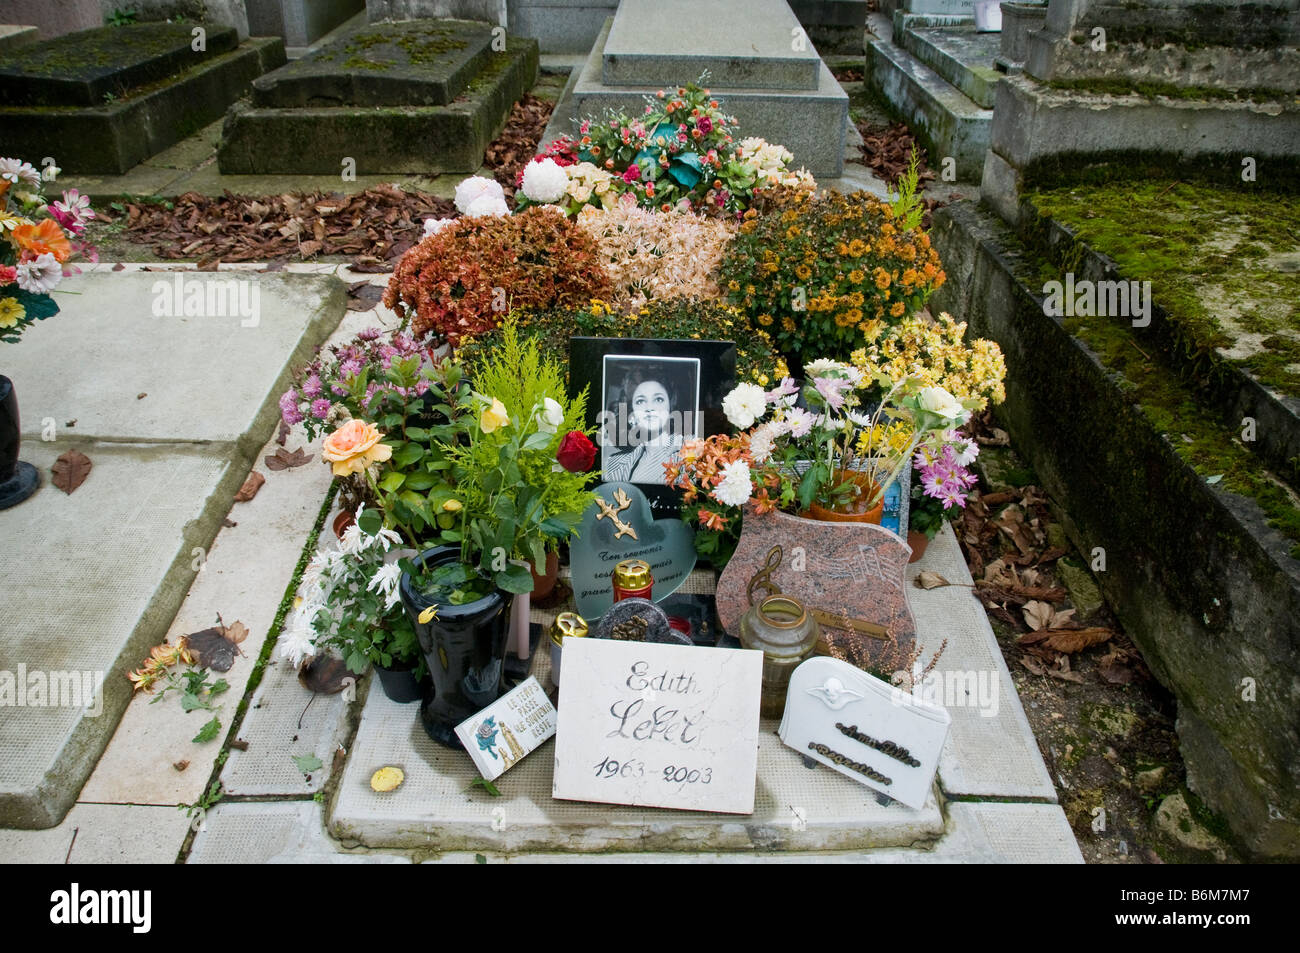 The Grave of Edith Lefel at the Pere Lachaise Cemetery Paris France - Stock Image